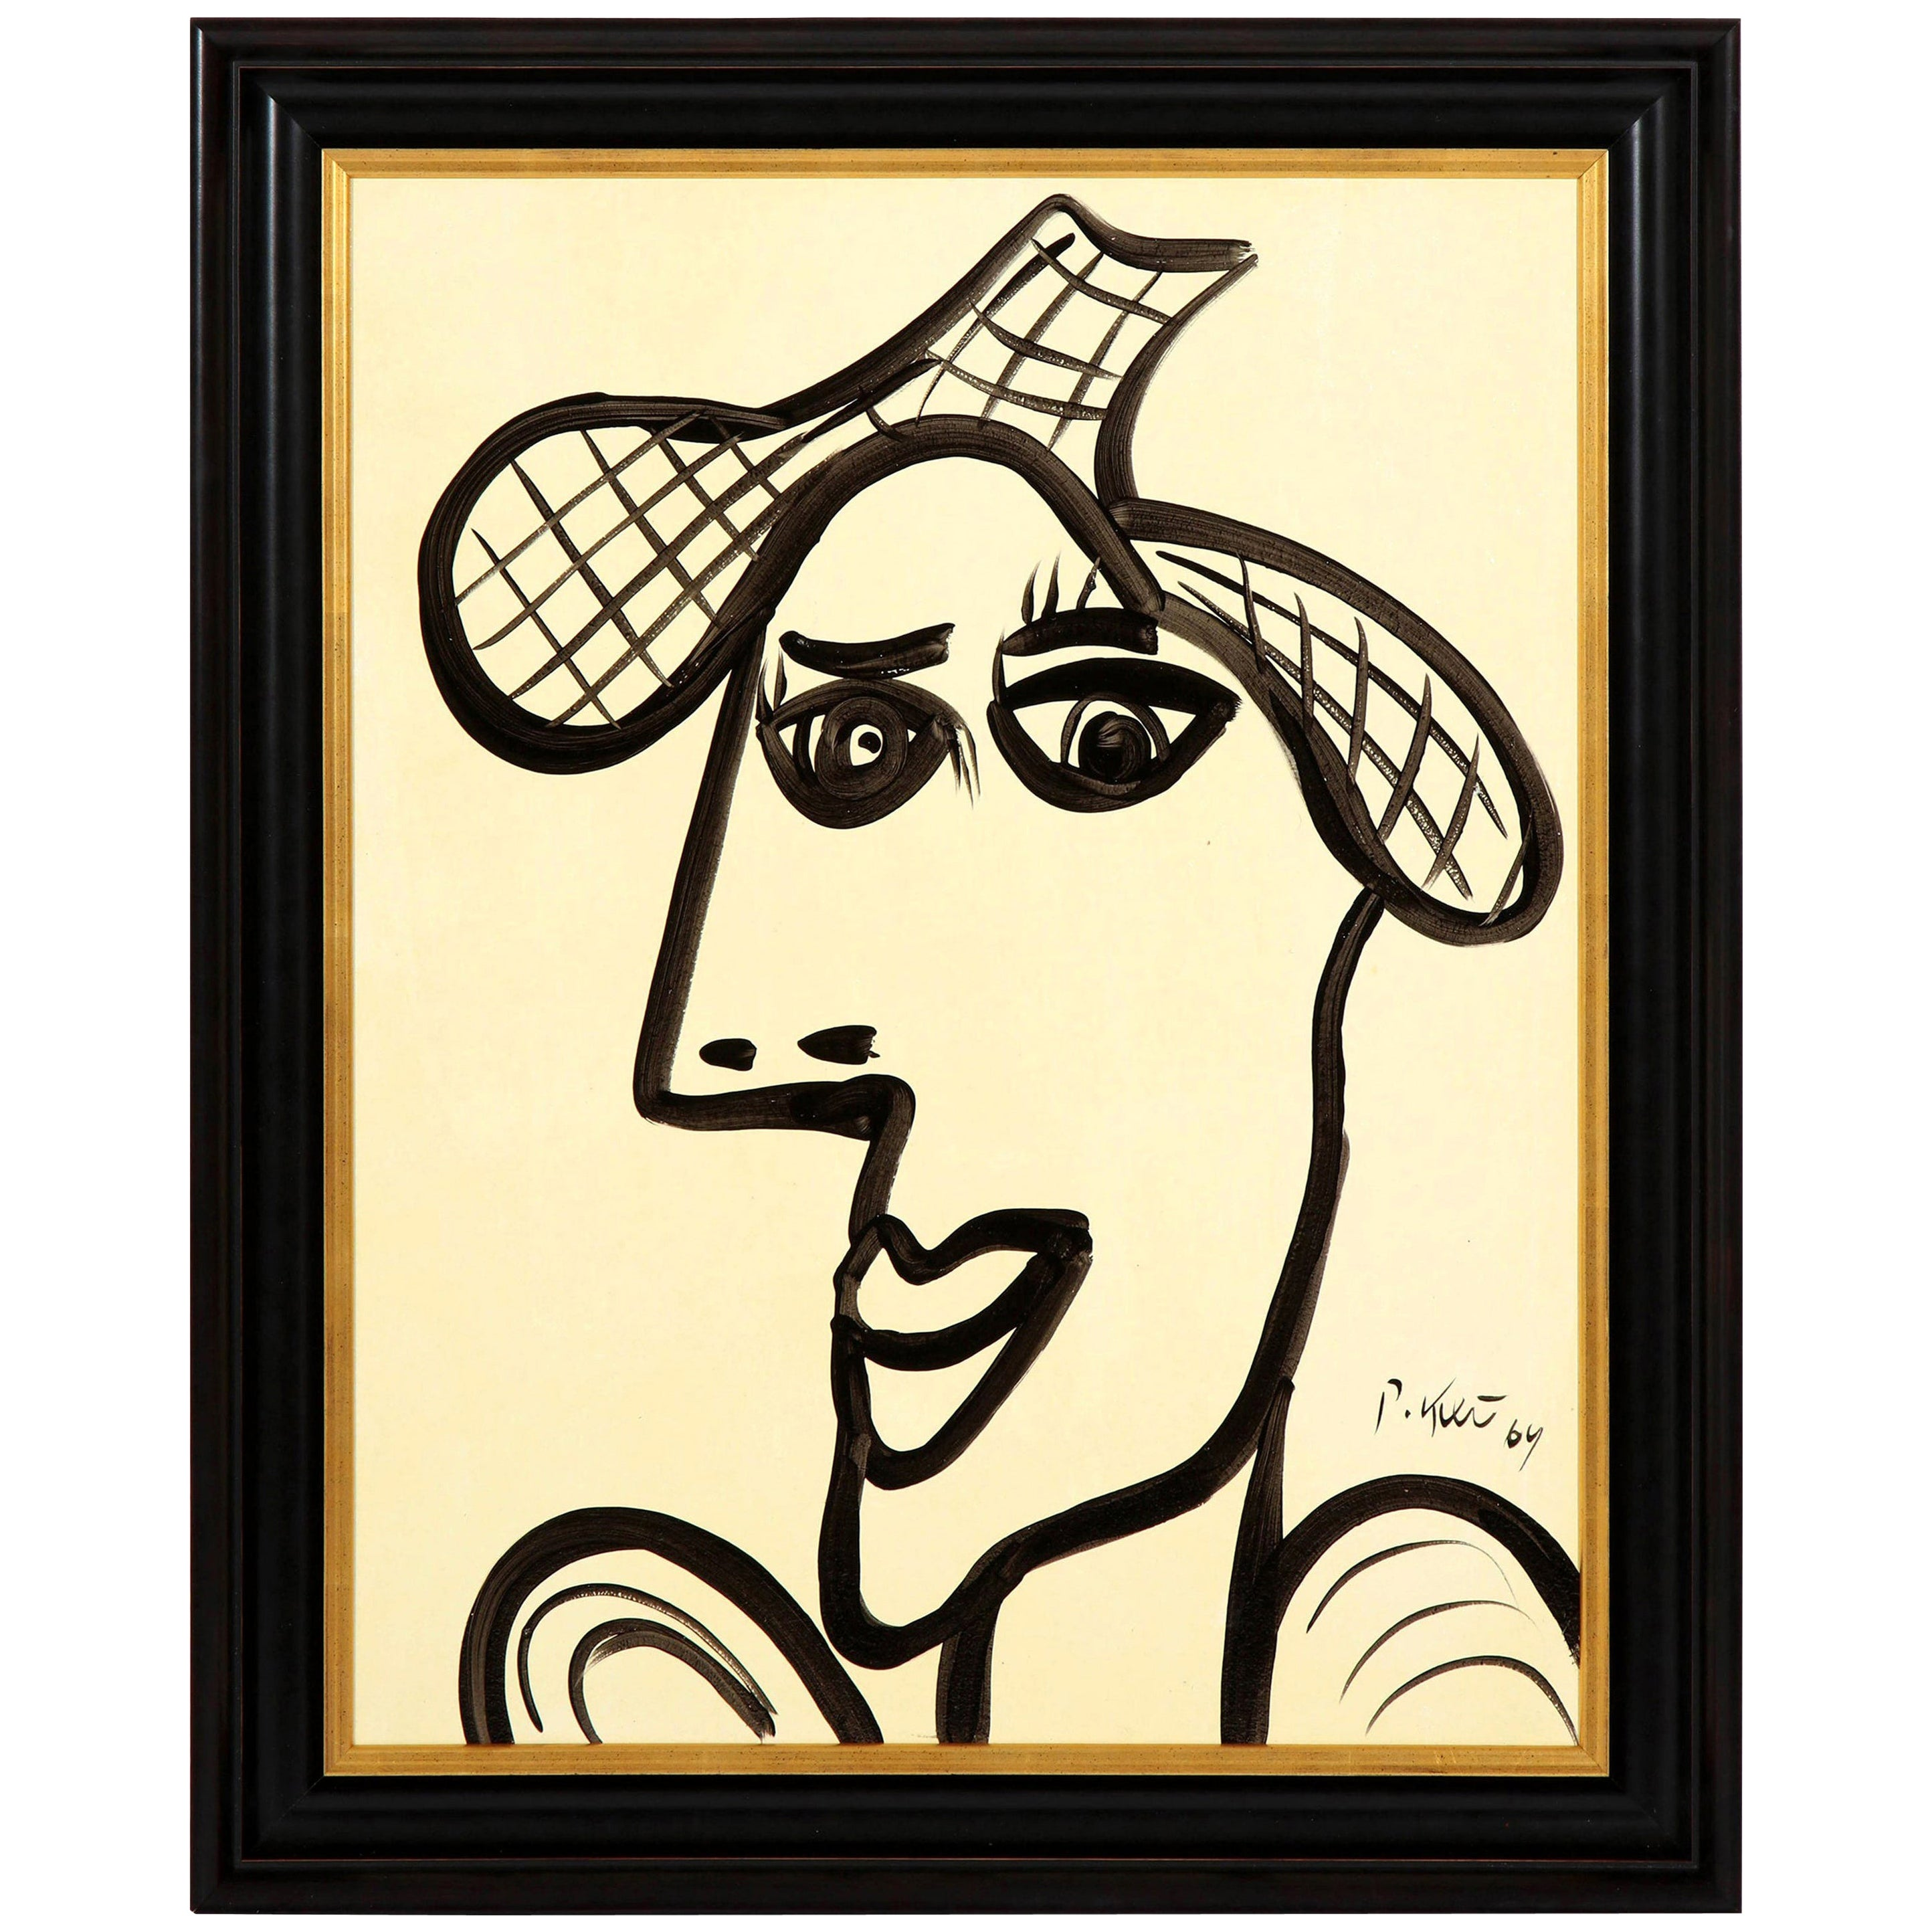 Painting by Peter Keil, Mid-Century Modern, Black and White, Modern Art